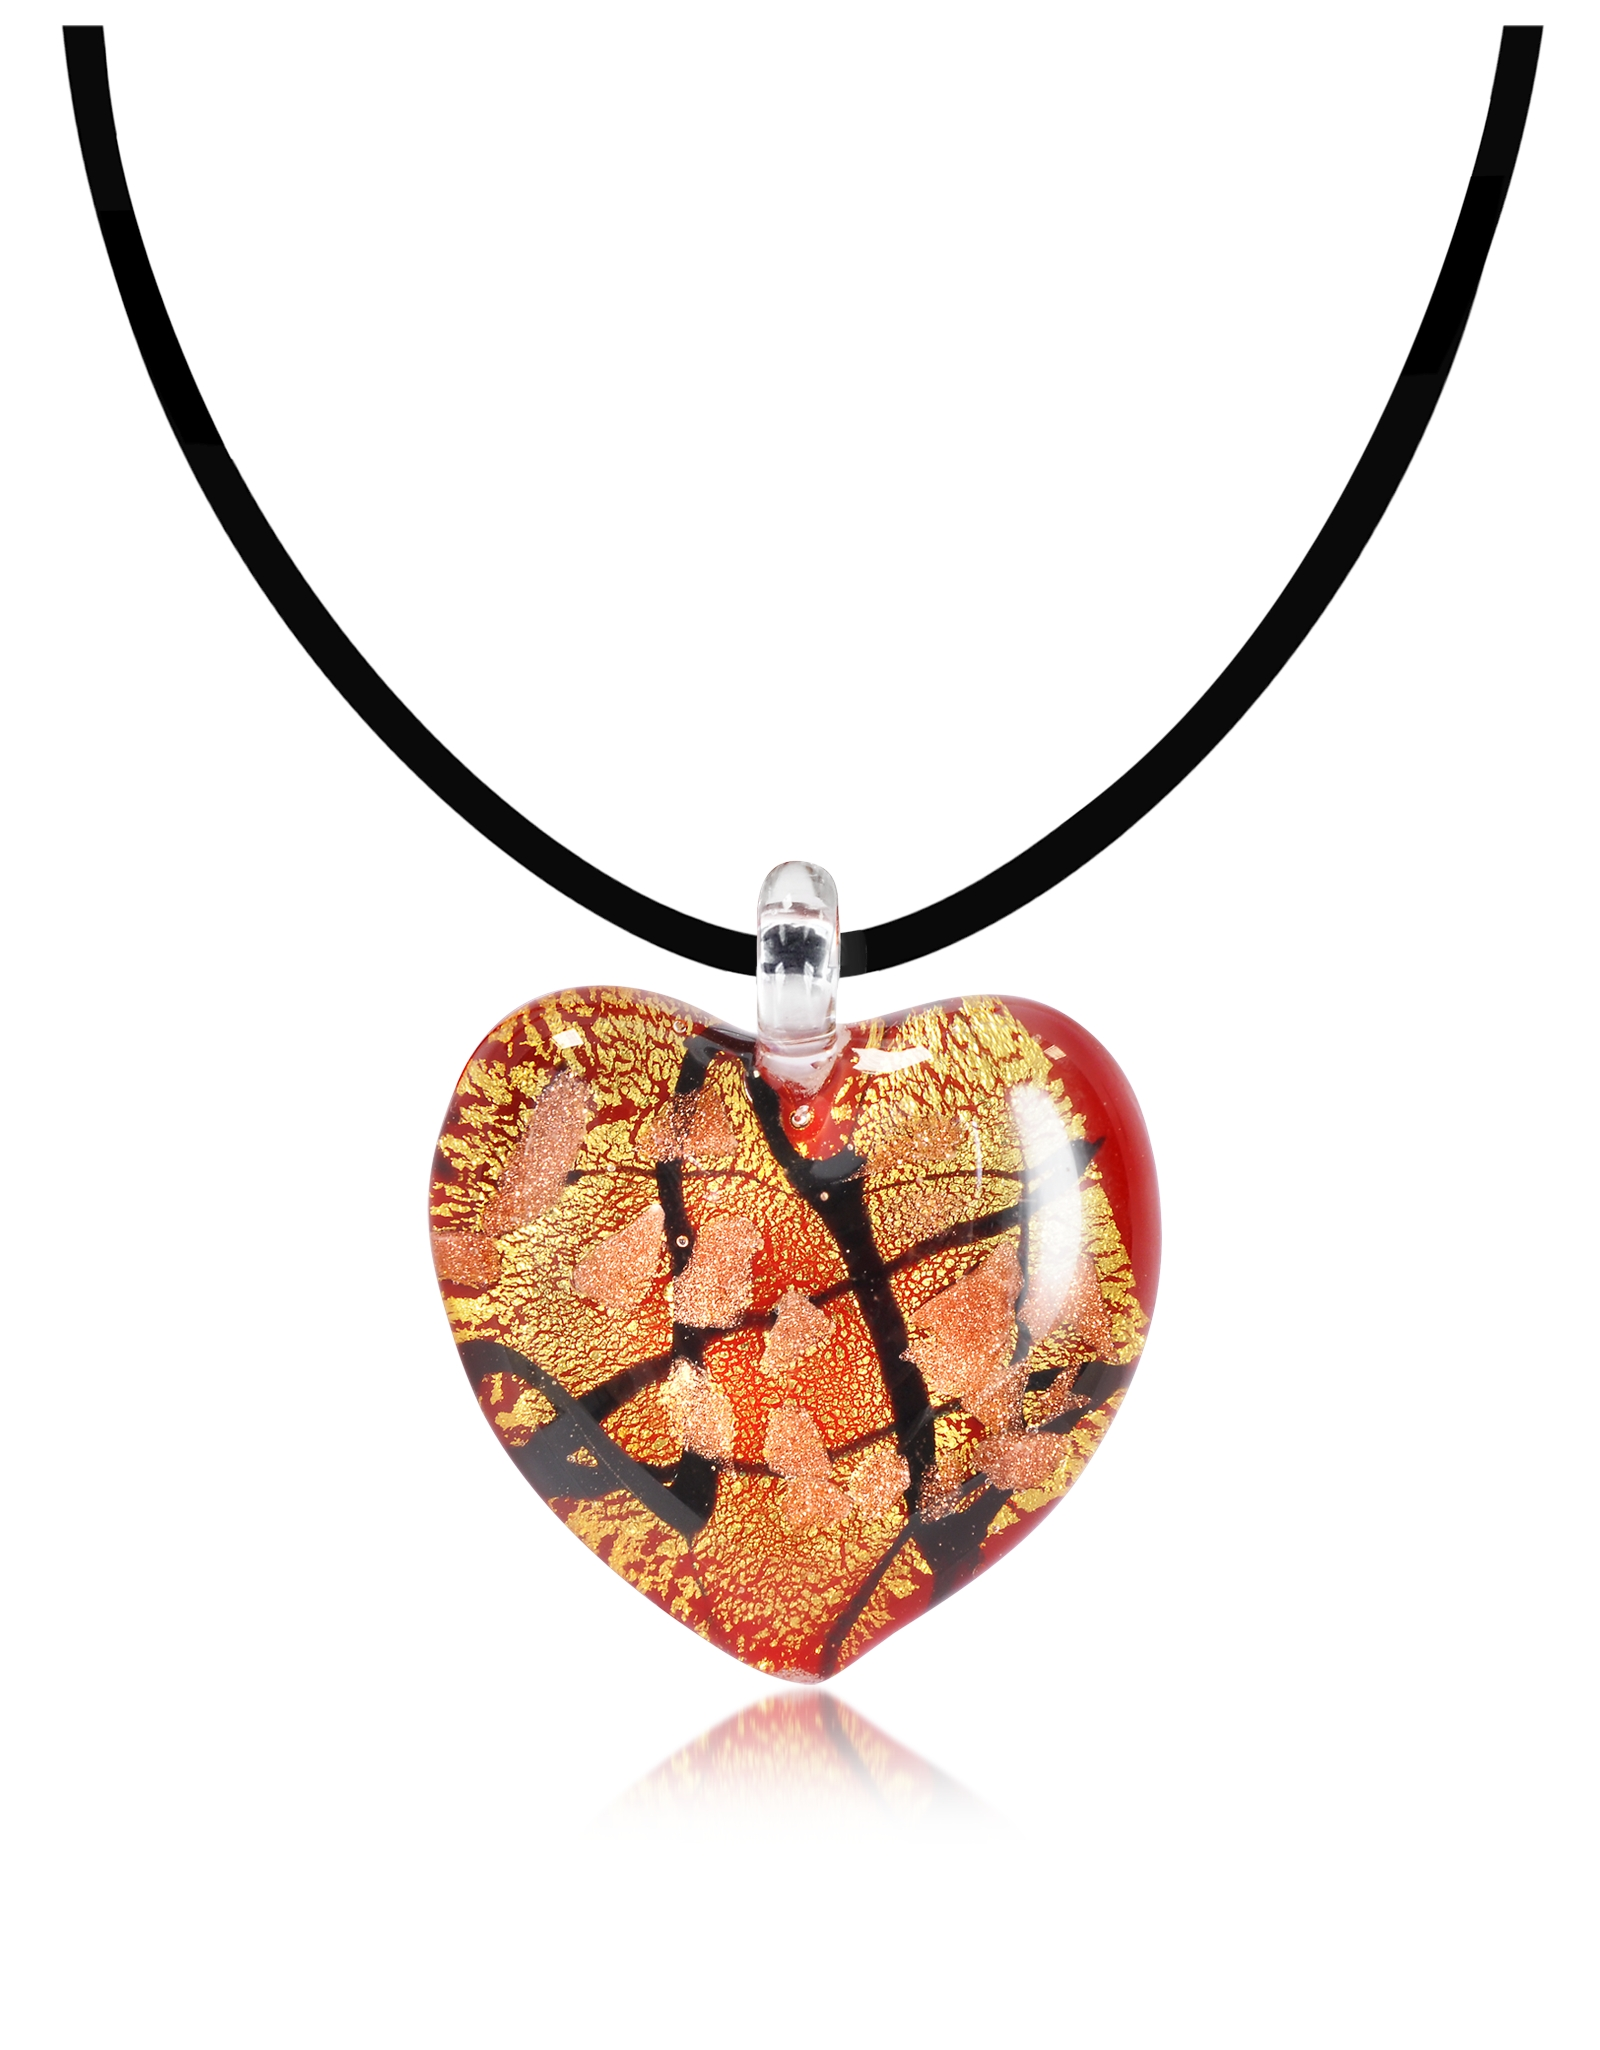 Lyst - Antica murrina Passione - Red, Gold And Black ...